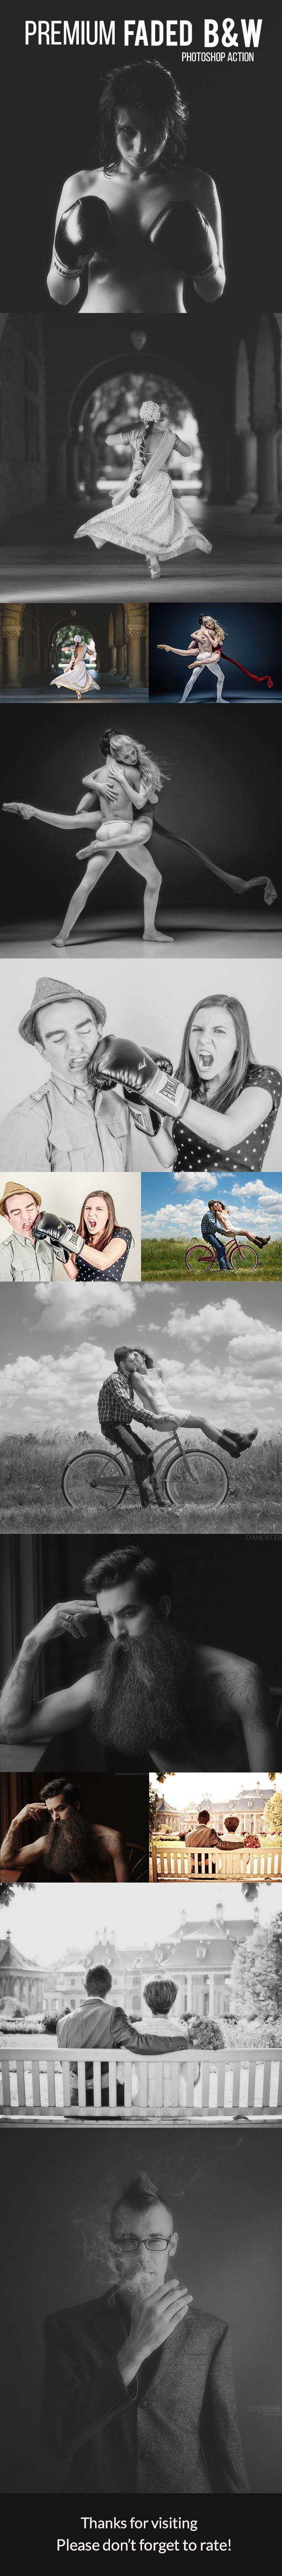 Premium Faded B&W - Photoshop #Action - Photo Effects Actions